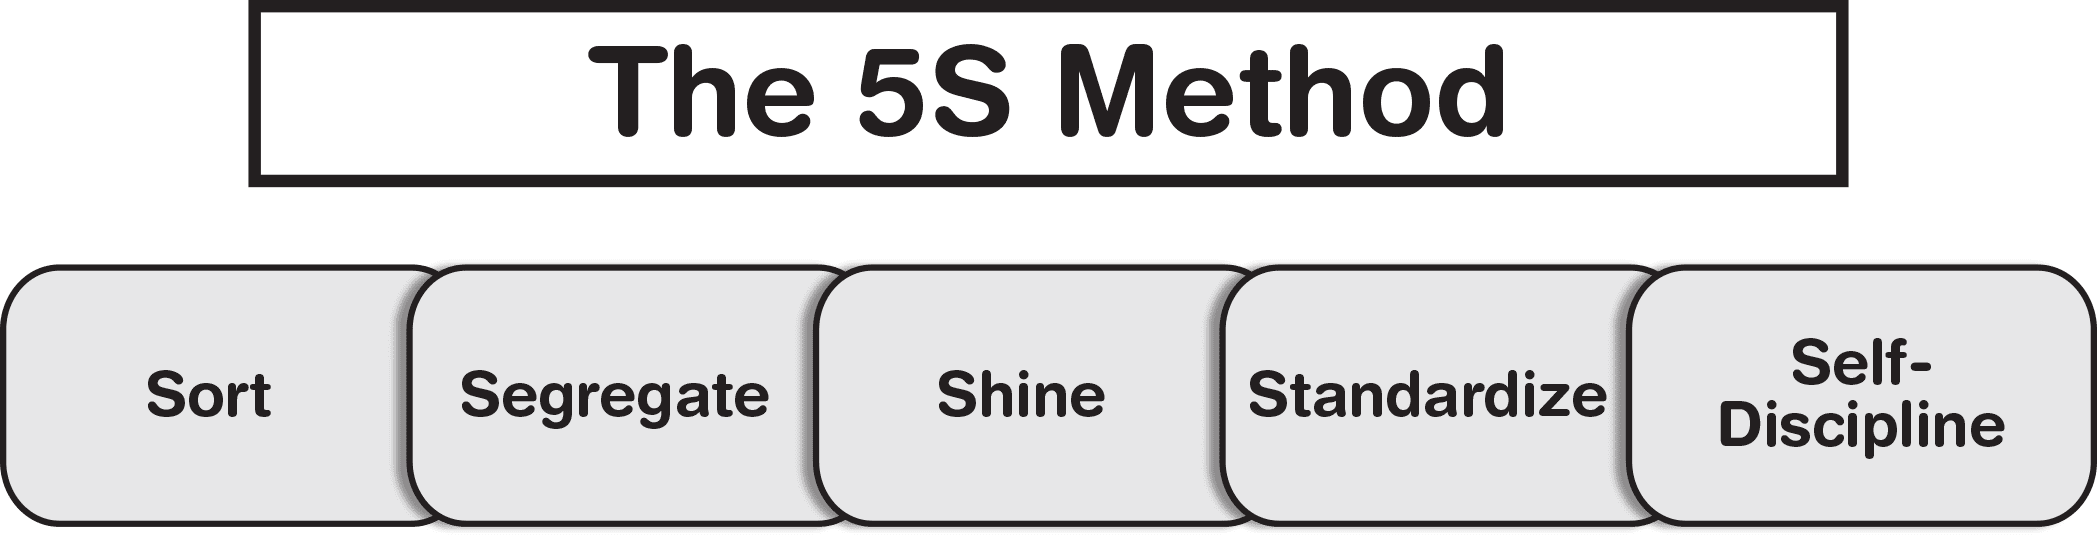 5S stands for sort, segregate, shine, standardize, and self-discipline. These steps are successive and build upon one another to produce repeatable, teachable, and consistent successes.